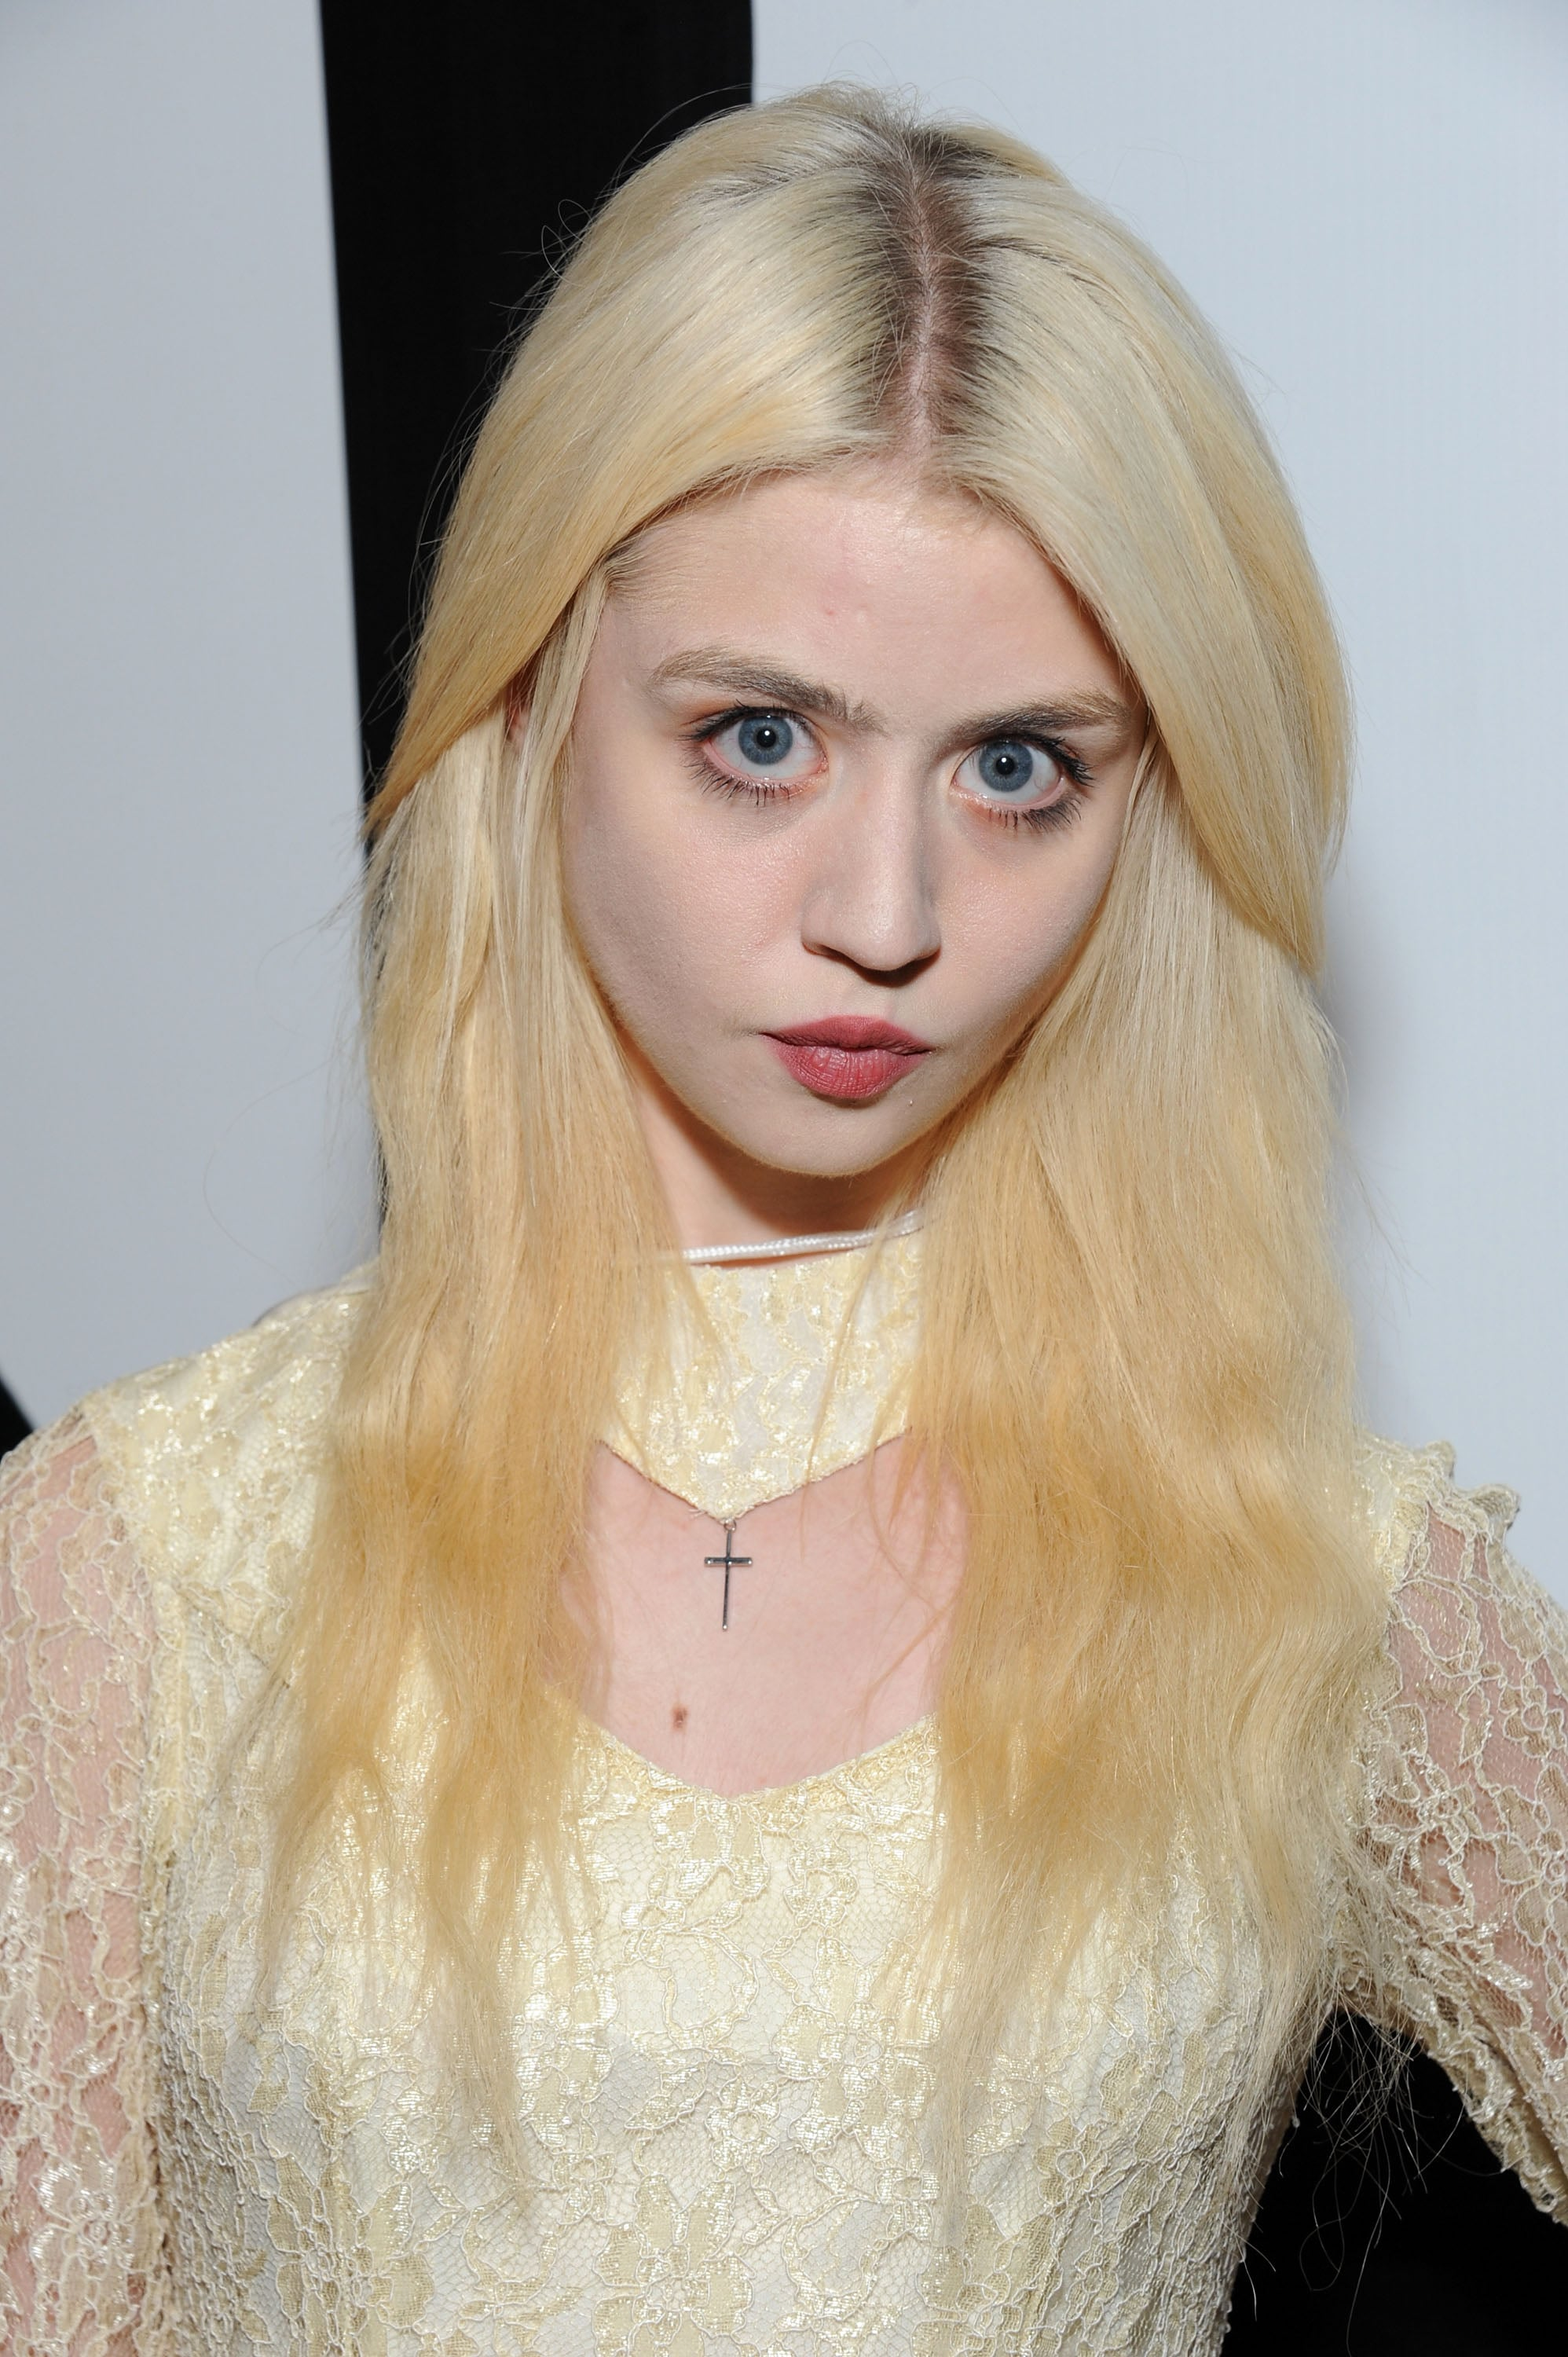 Allison Antm allison harvard | antm contestants: where are they now